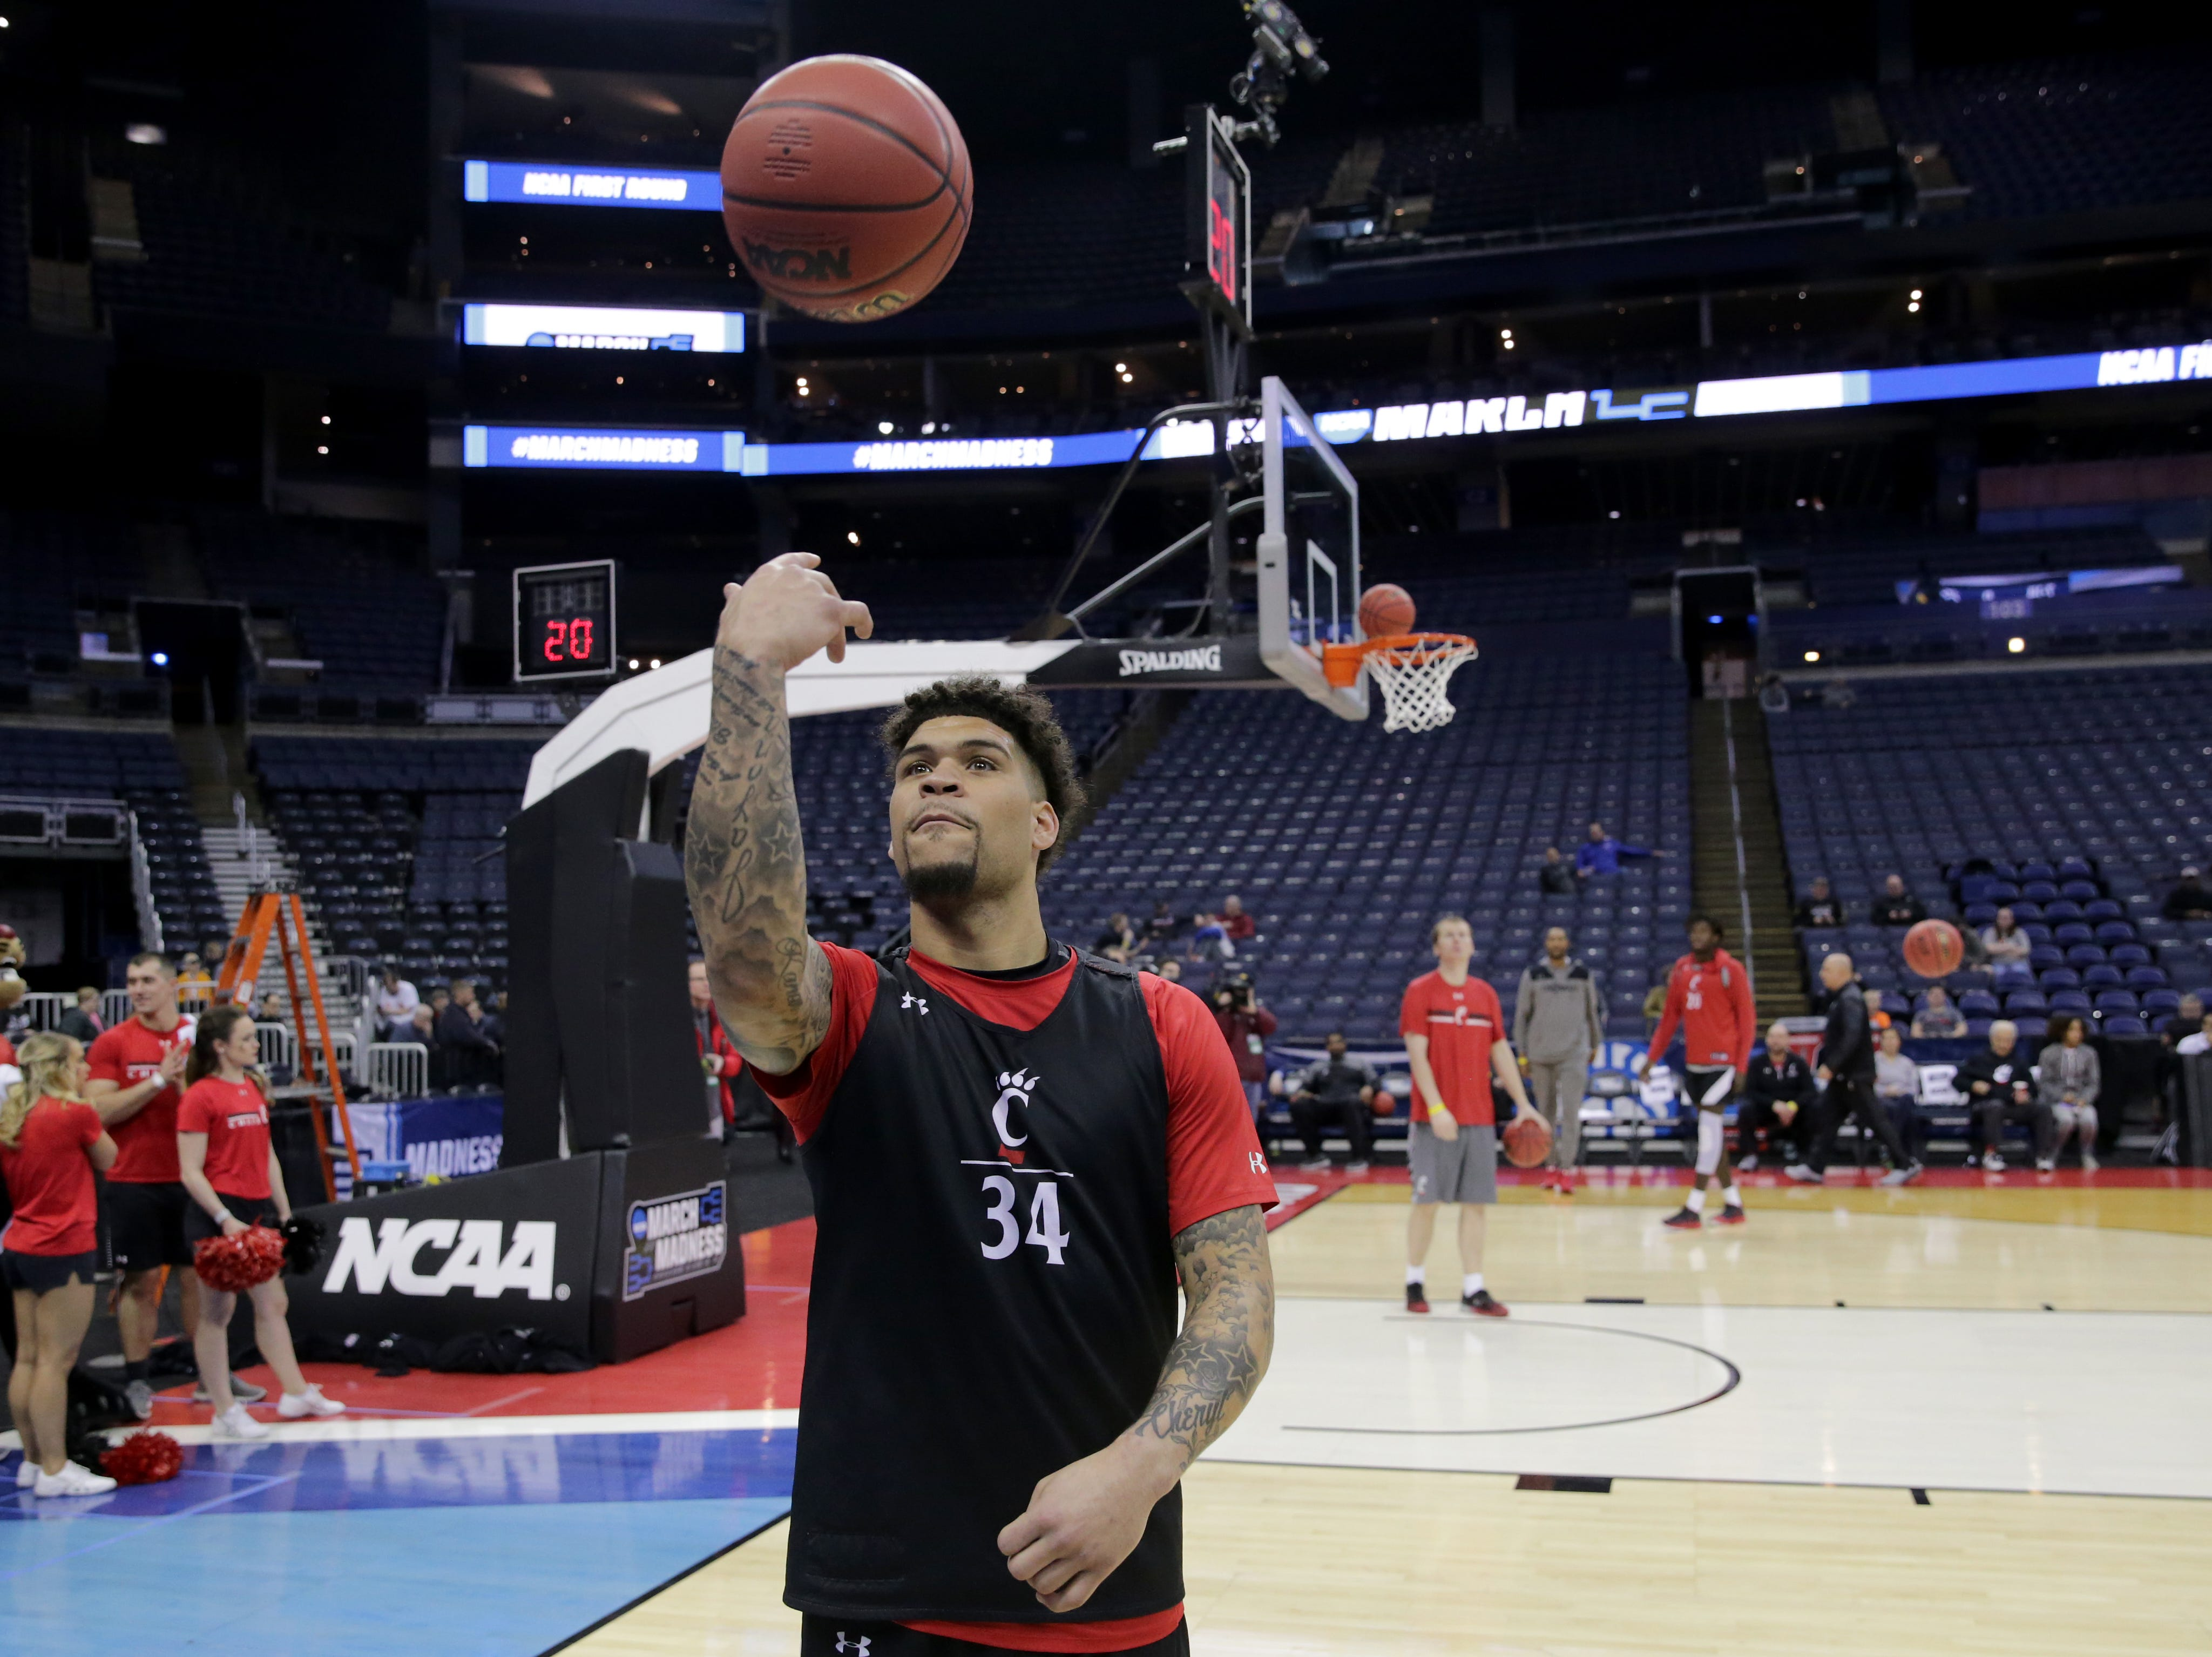 Cincinnati Bearcats guard Jarron Cumberland (34) attempts a shot during open practice, Thursday, March 21, 2019, at Nationwide Arena in Columbus, Ohio.